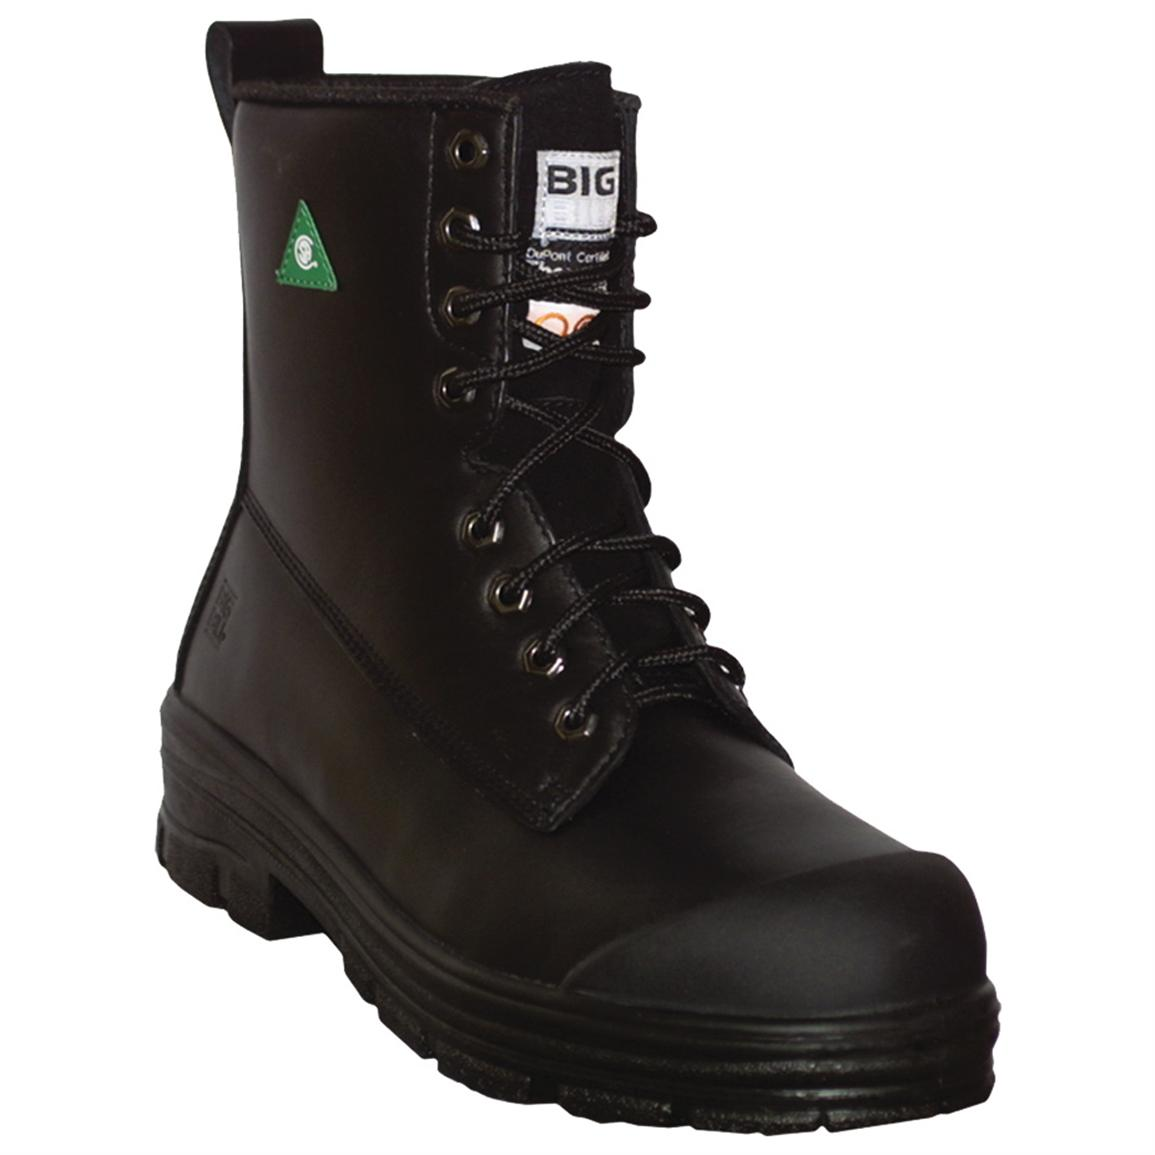 Black Leather Work Boots 6snz6ANd